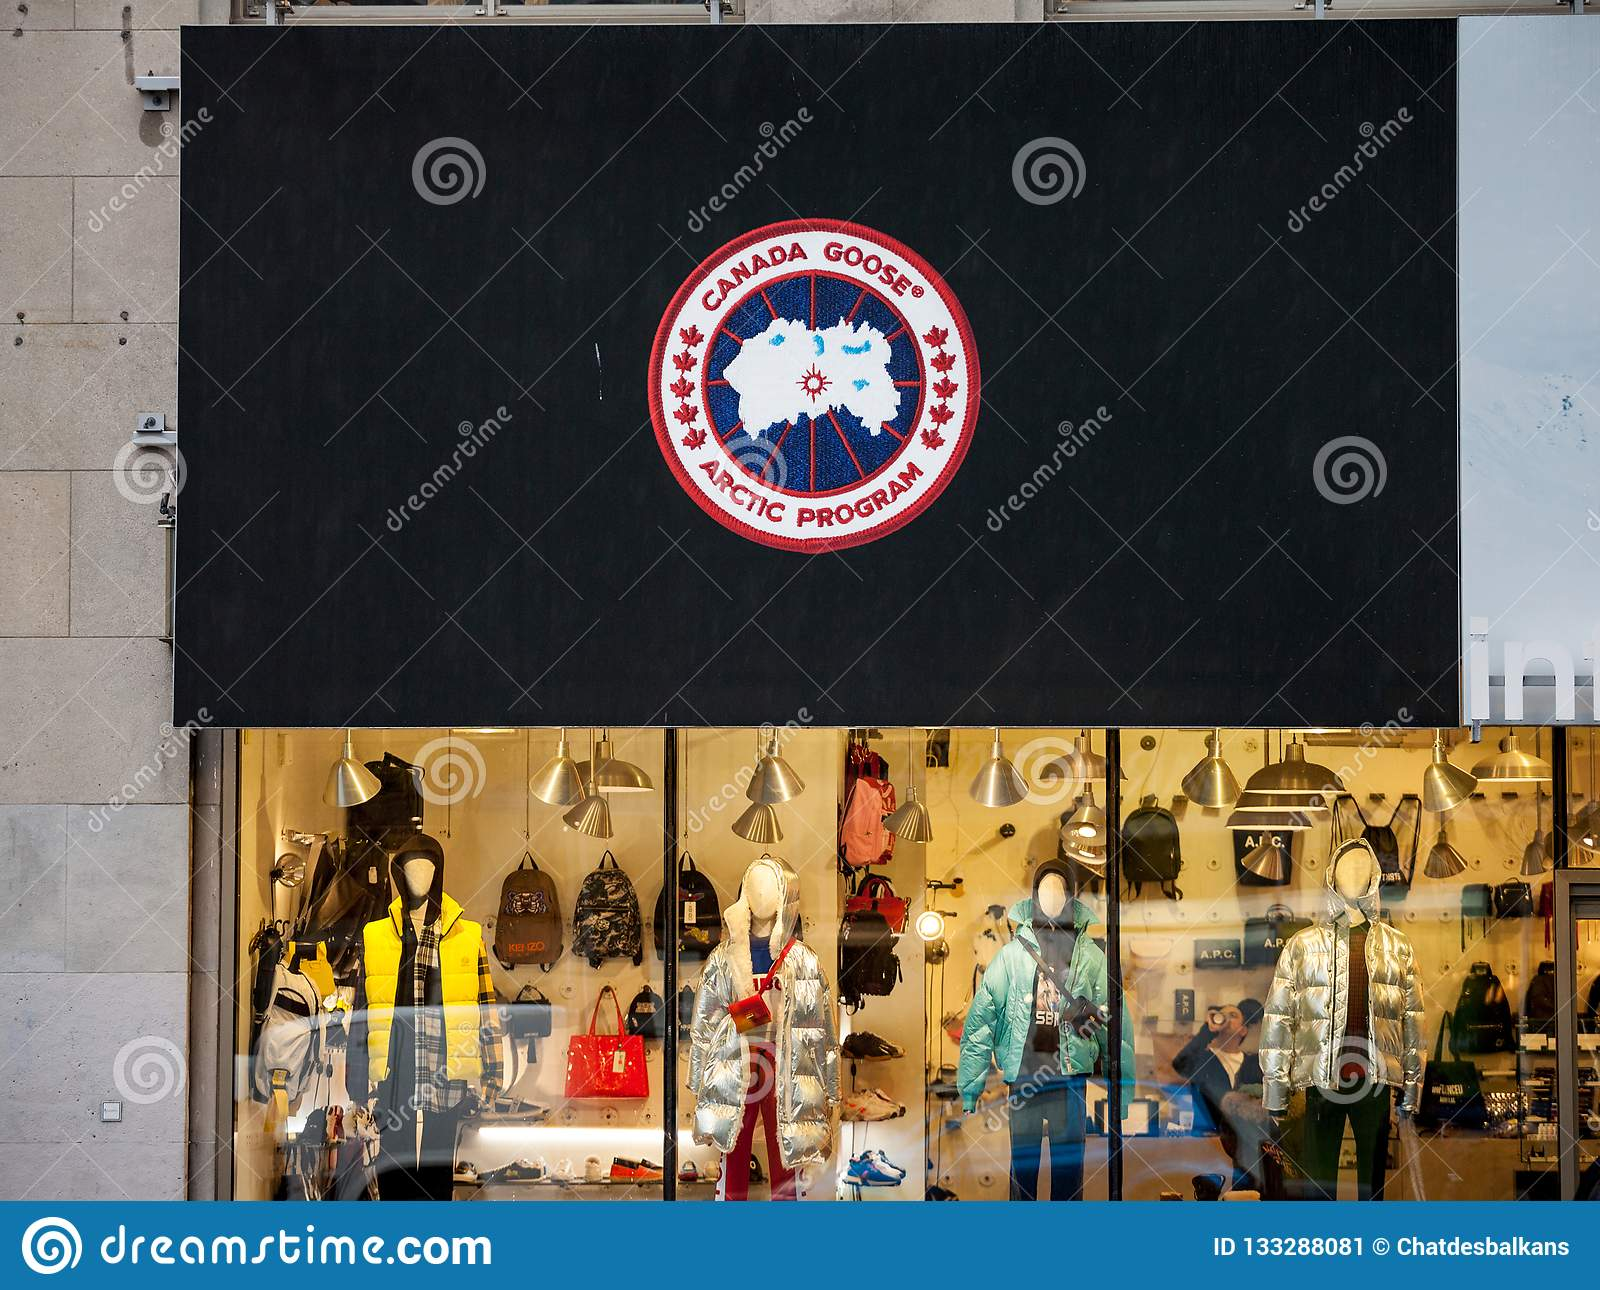 canada goose shop in montreal